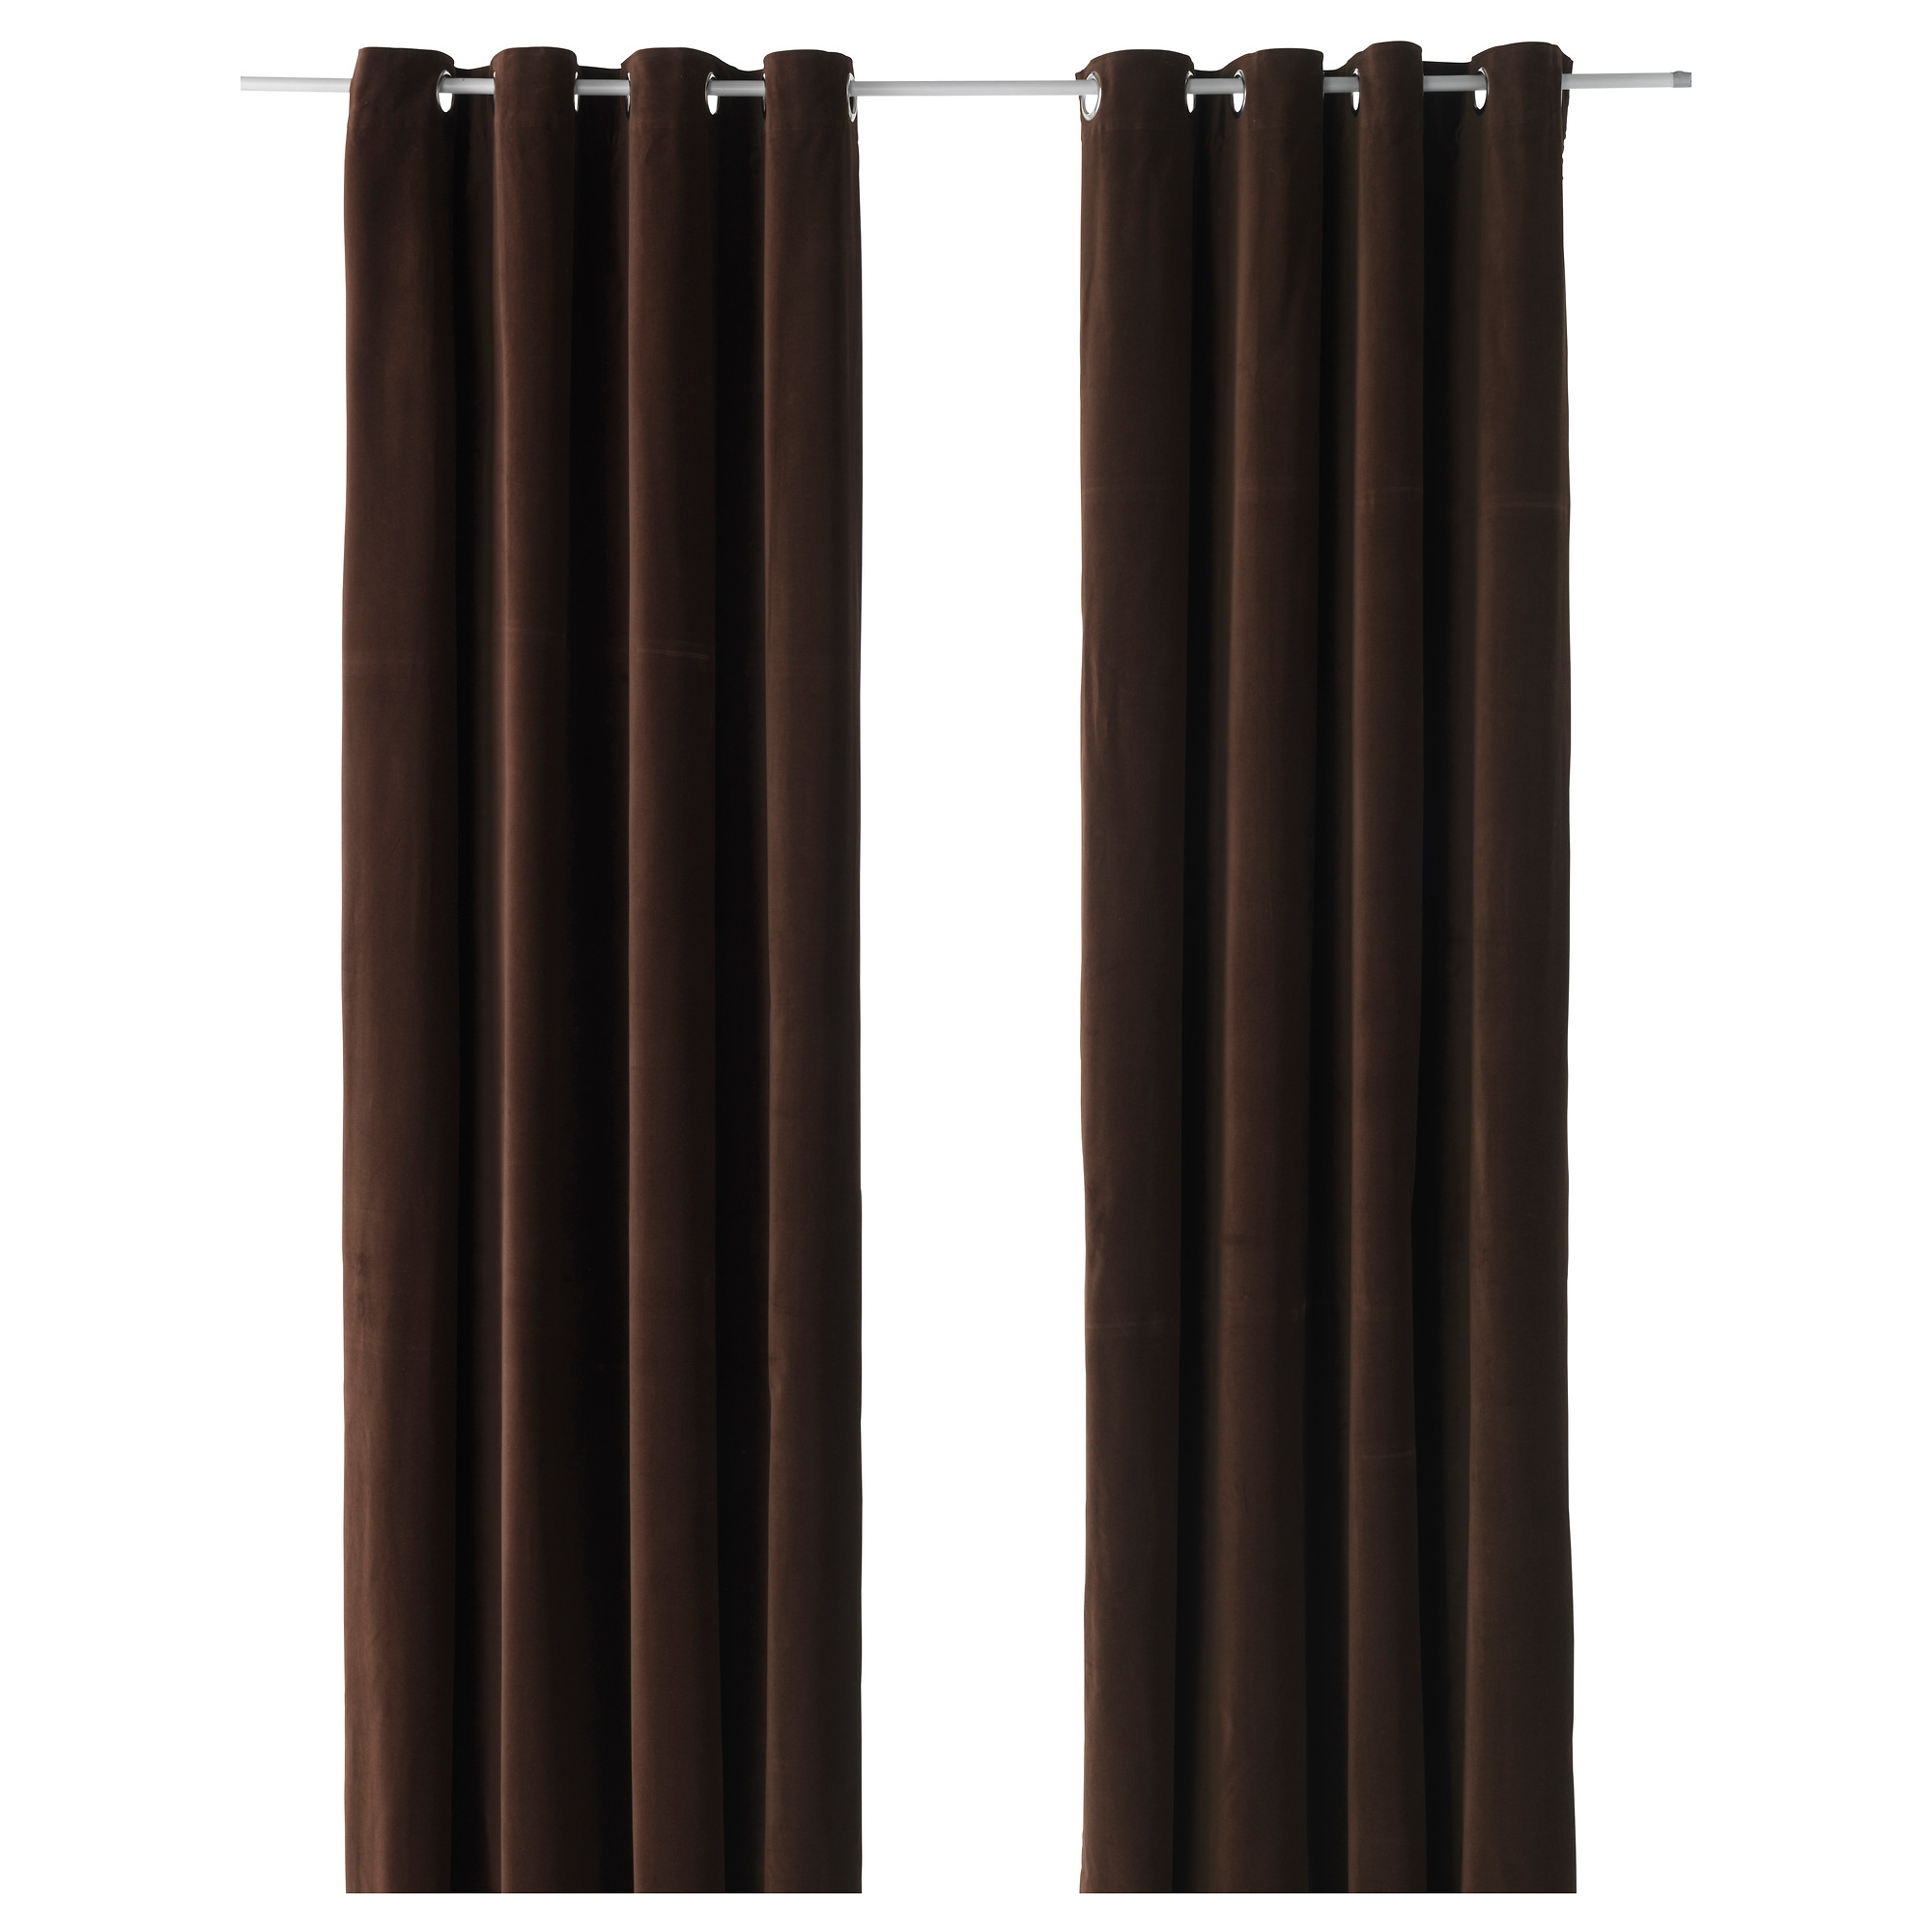 Ikea Curtains Brown Decorate The House With Beautiful Curtains With Regard To Short Brown Curtains (Image 13 of 25)